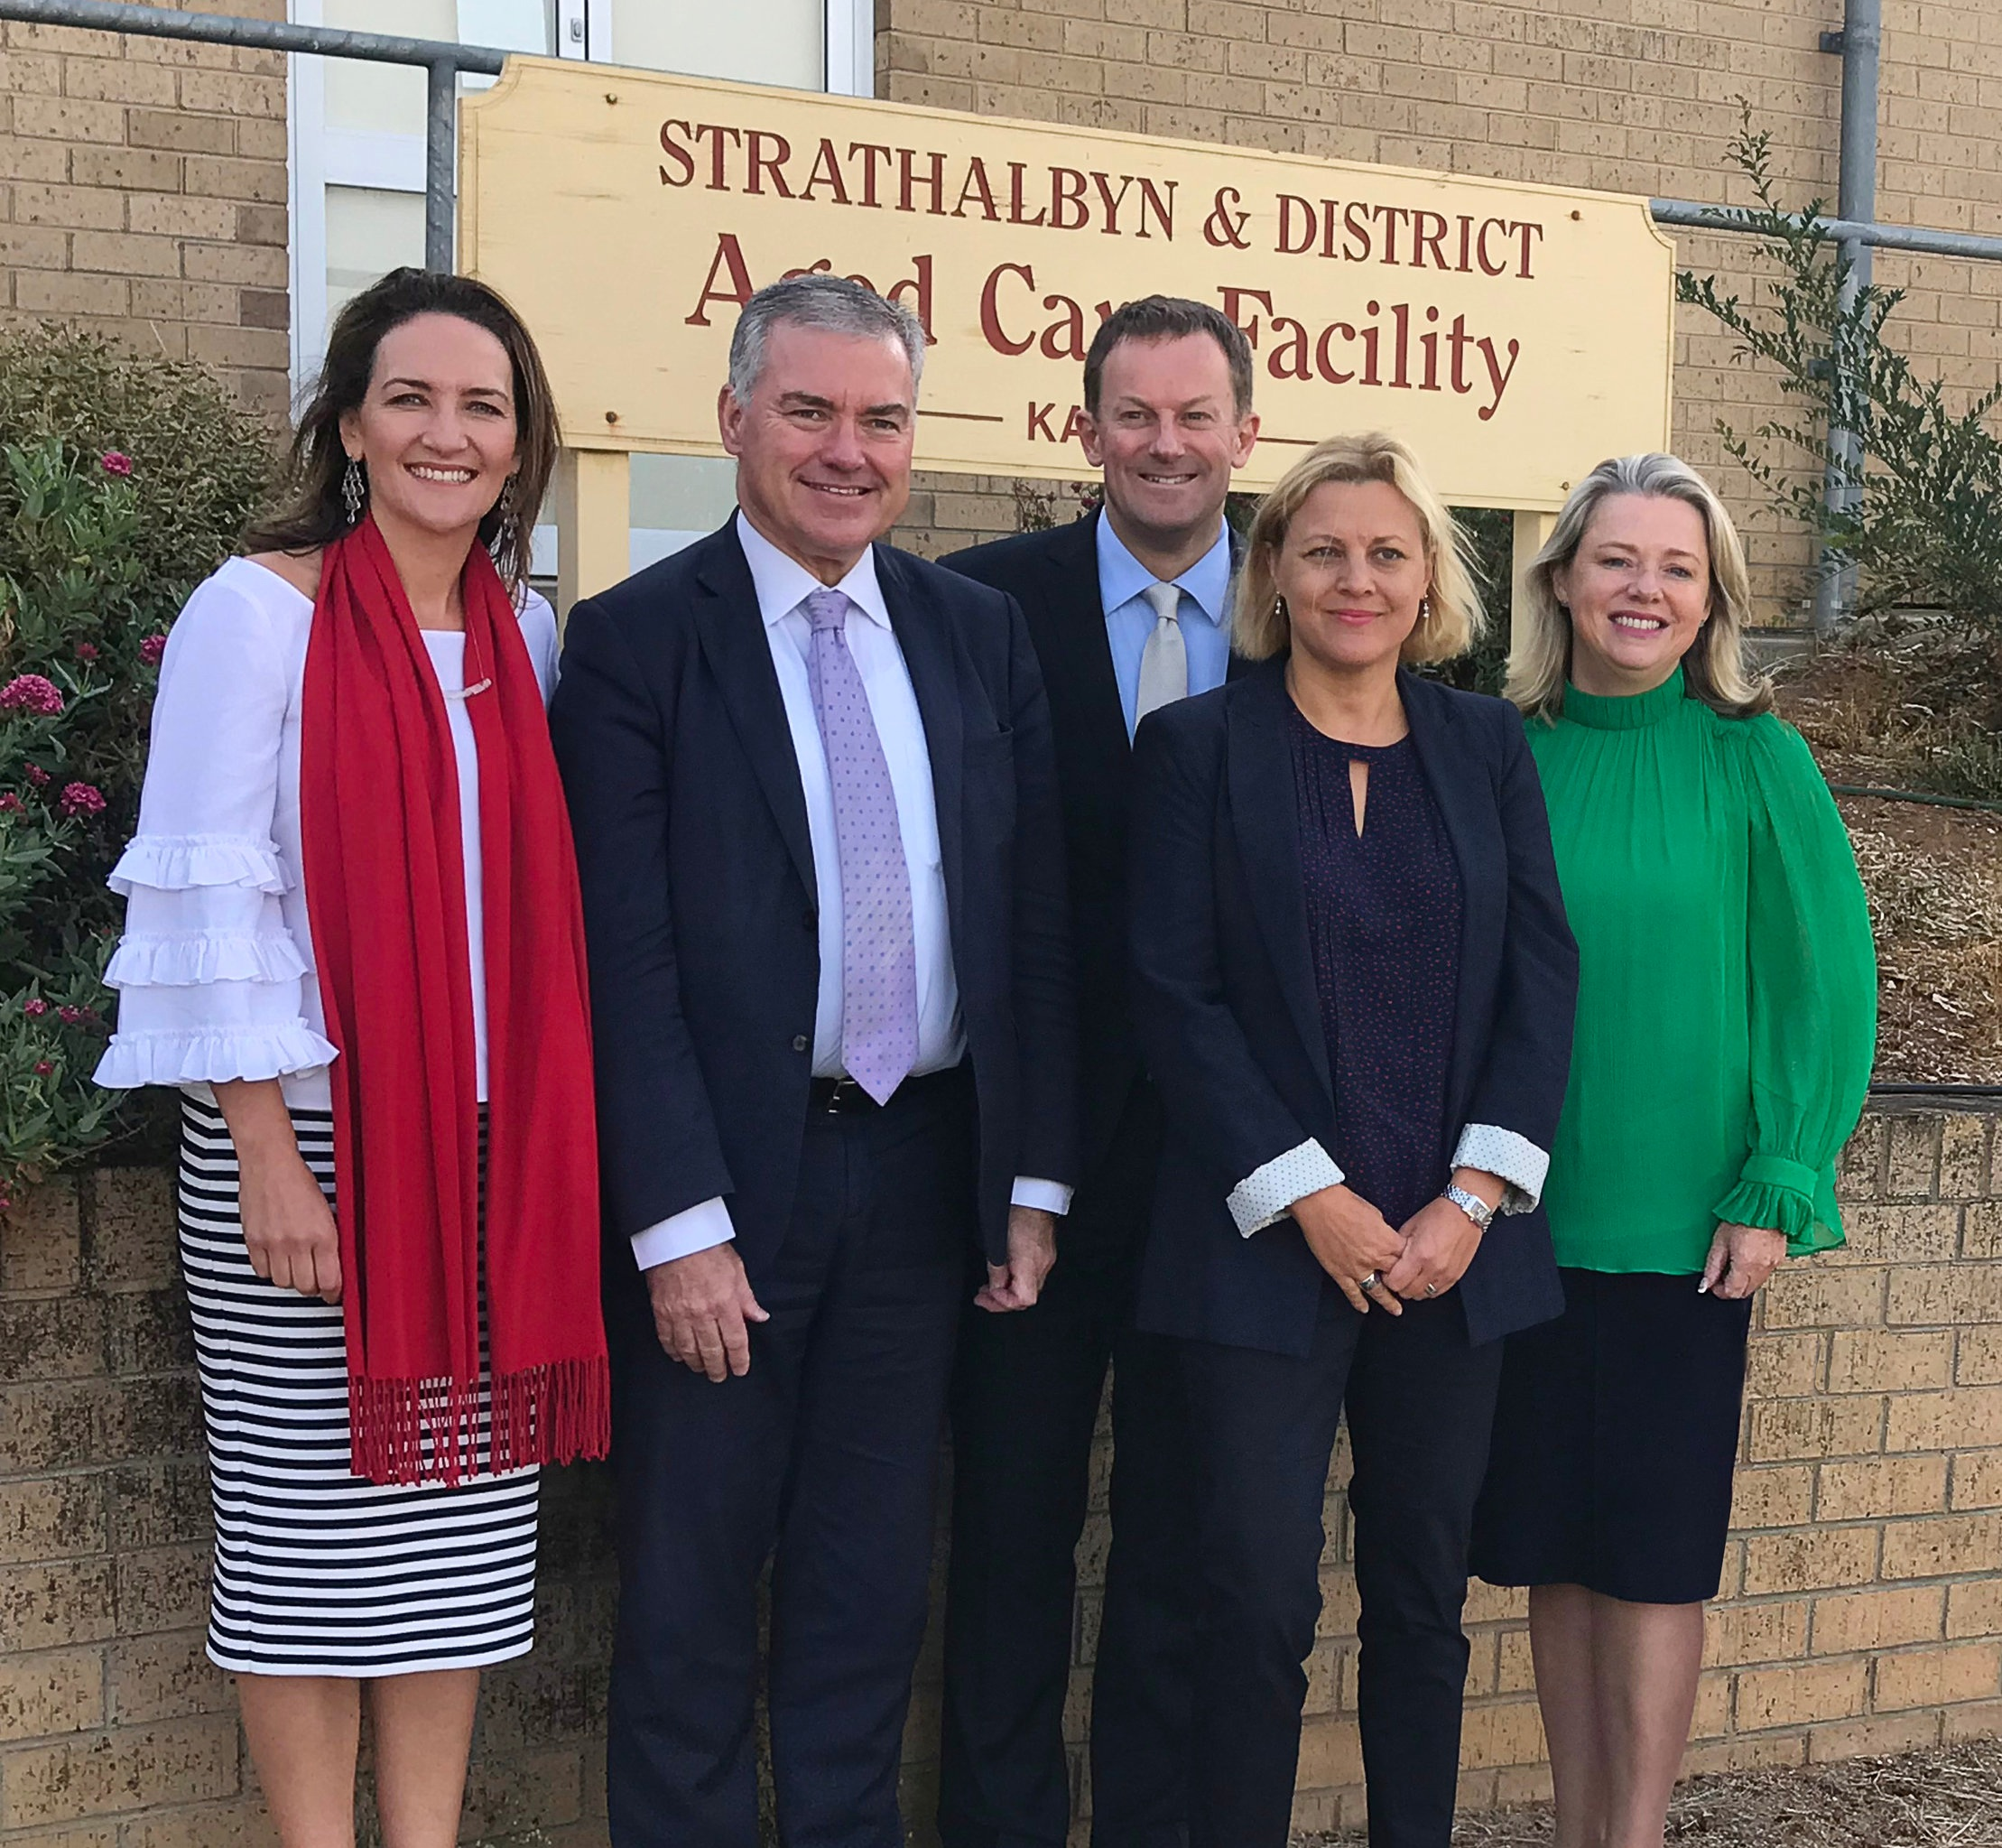 (from left to right) Georgina Downer - Liberal candidate for Mayo,  Hon Stephen Wade MLC  - Minister for Health and Wellbeing,  Josh Teague  - Member for Heysen,  Veera Mustonen  - GCMA Executive Director LifeLab and  Julianne Parkinson  - GCMA Chief Executive Officer